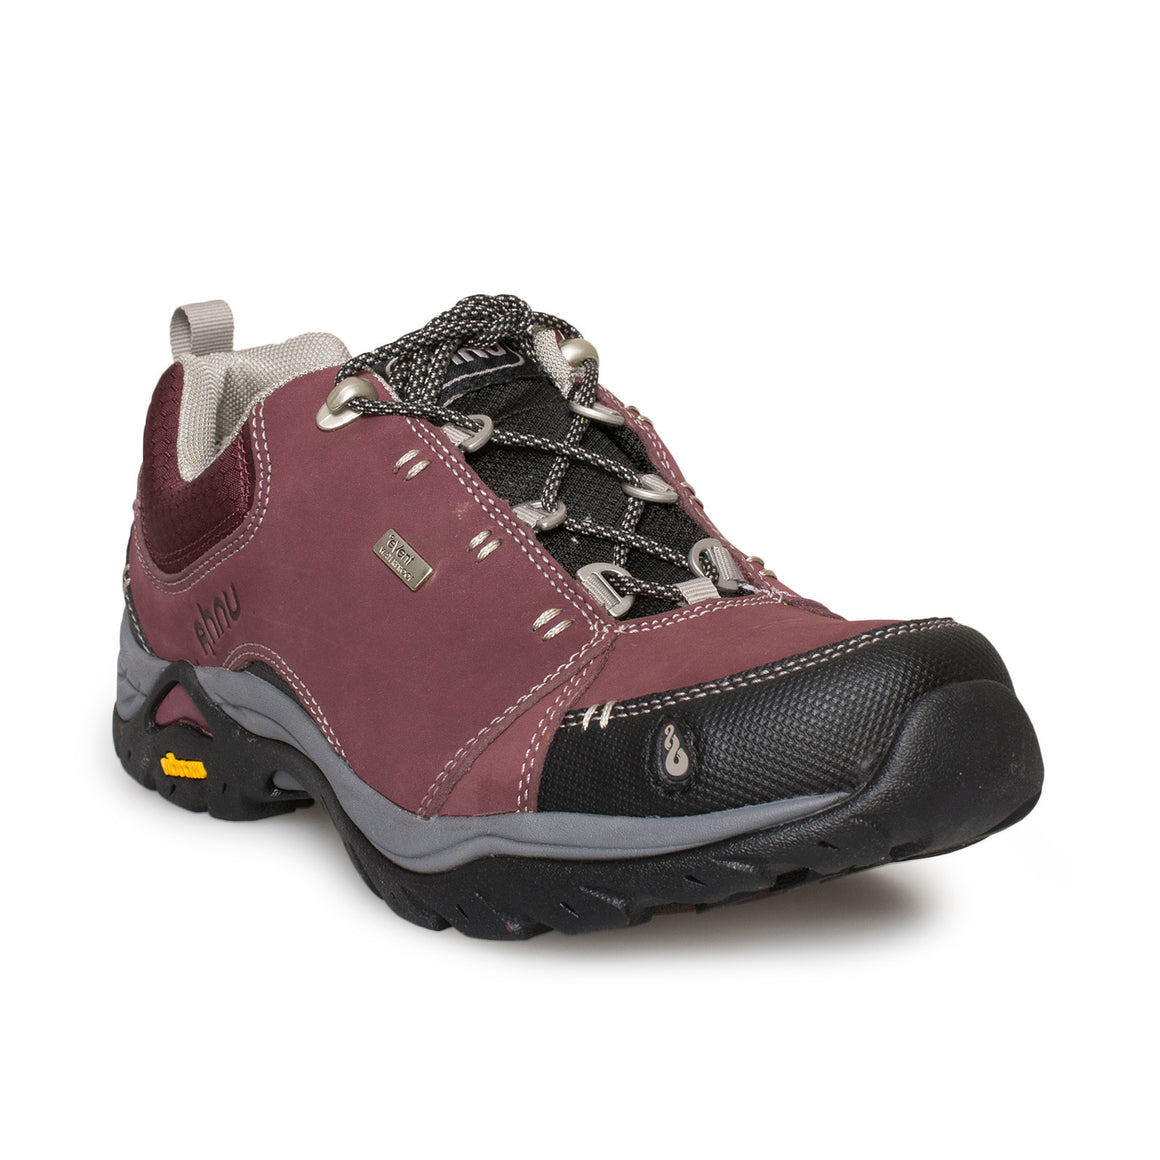 Ahnu Montara II WP Mission Fig Boots - Women's